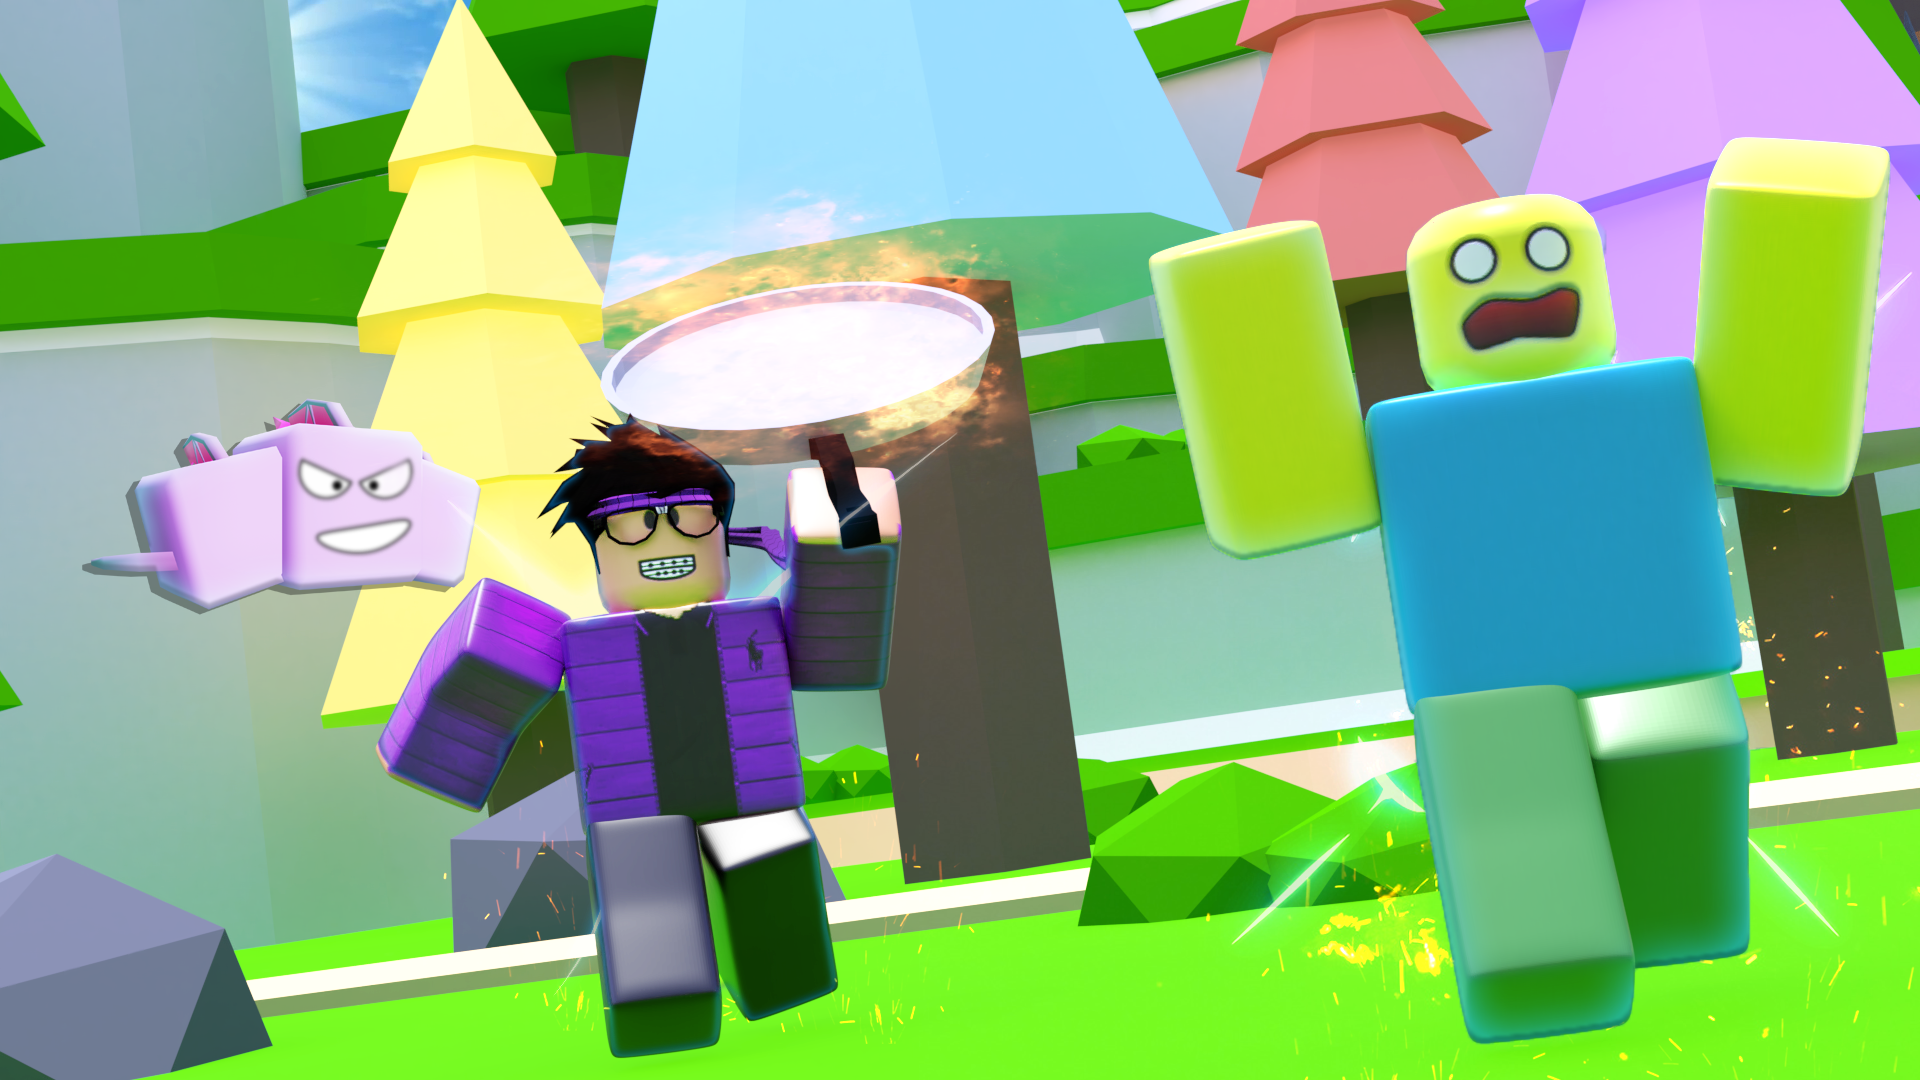 How To Make A Roblox Simulator Thumbnail Feedback On My Game Thumbnail Art Design Support Roblox Developer Forum